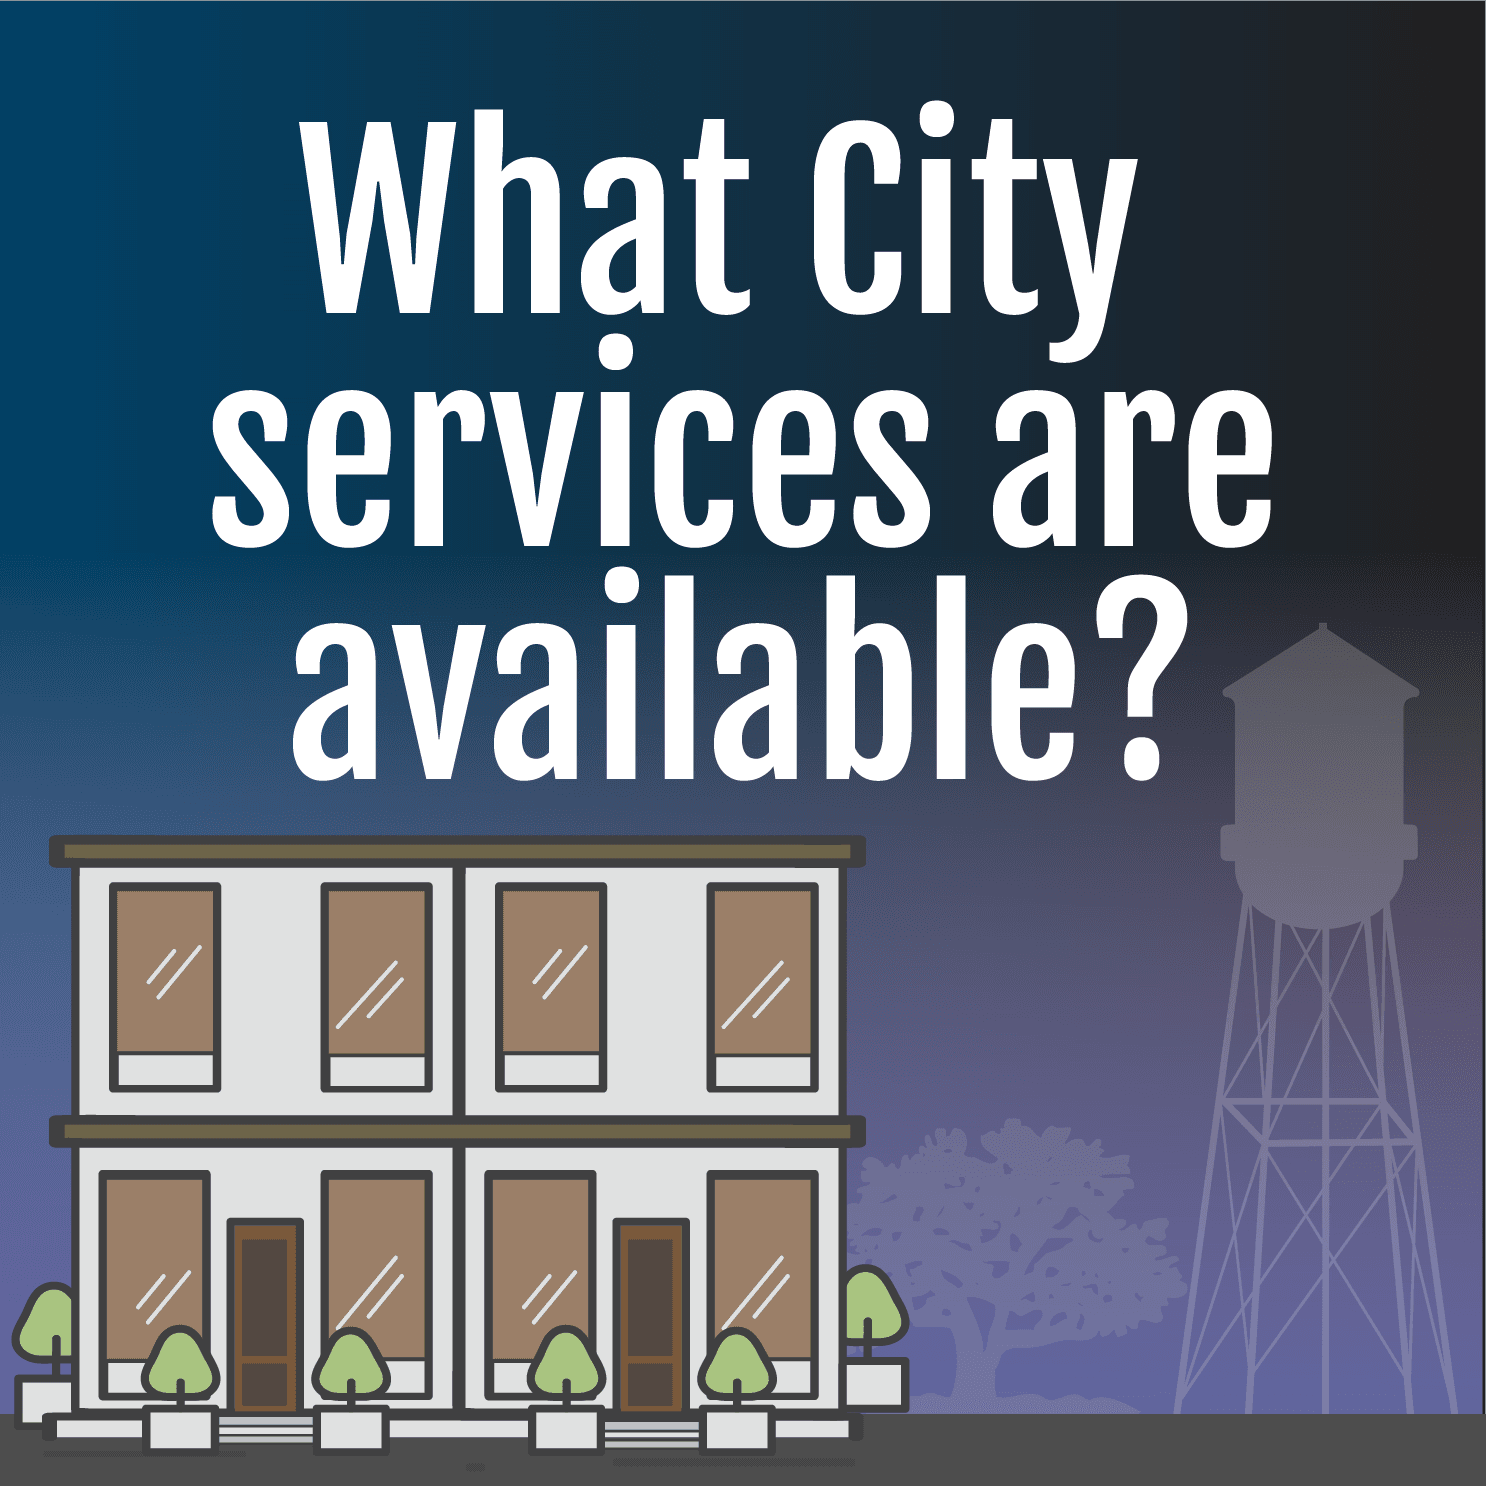 What City services are available during the pandemic?